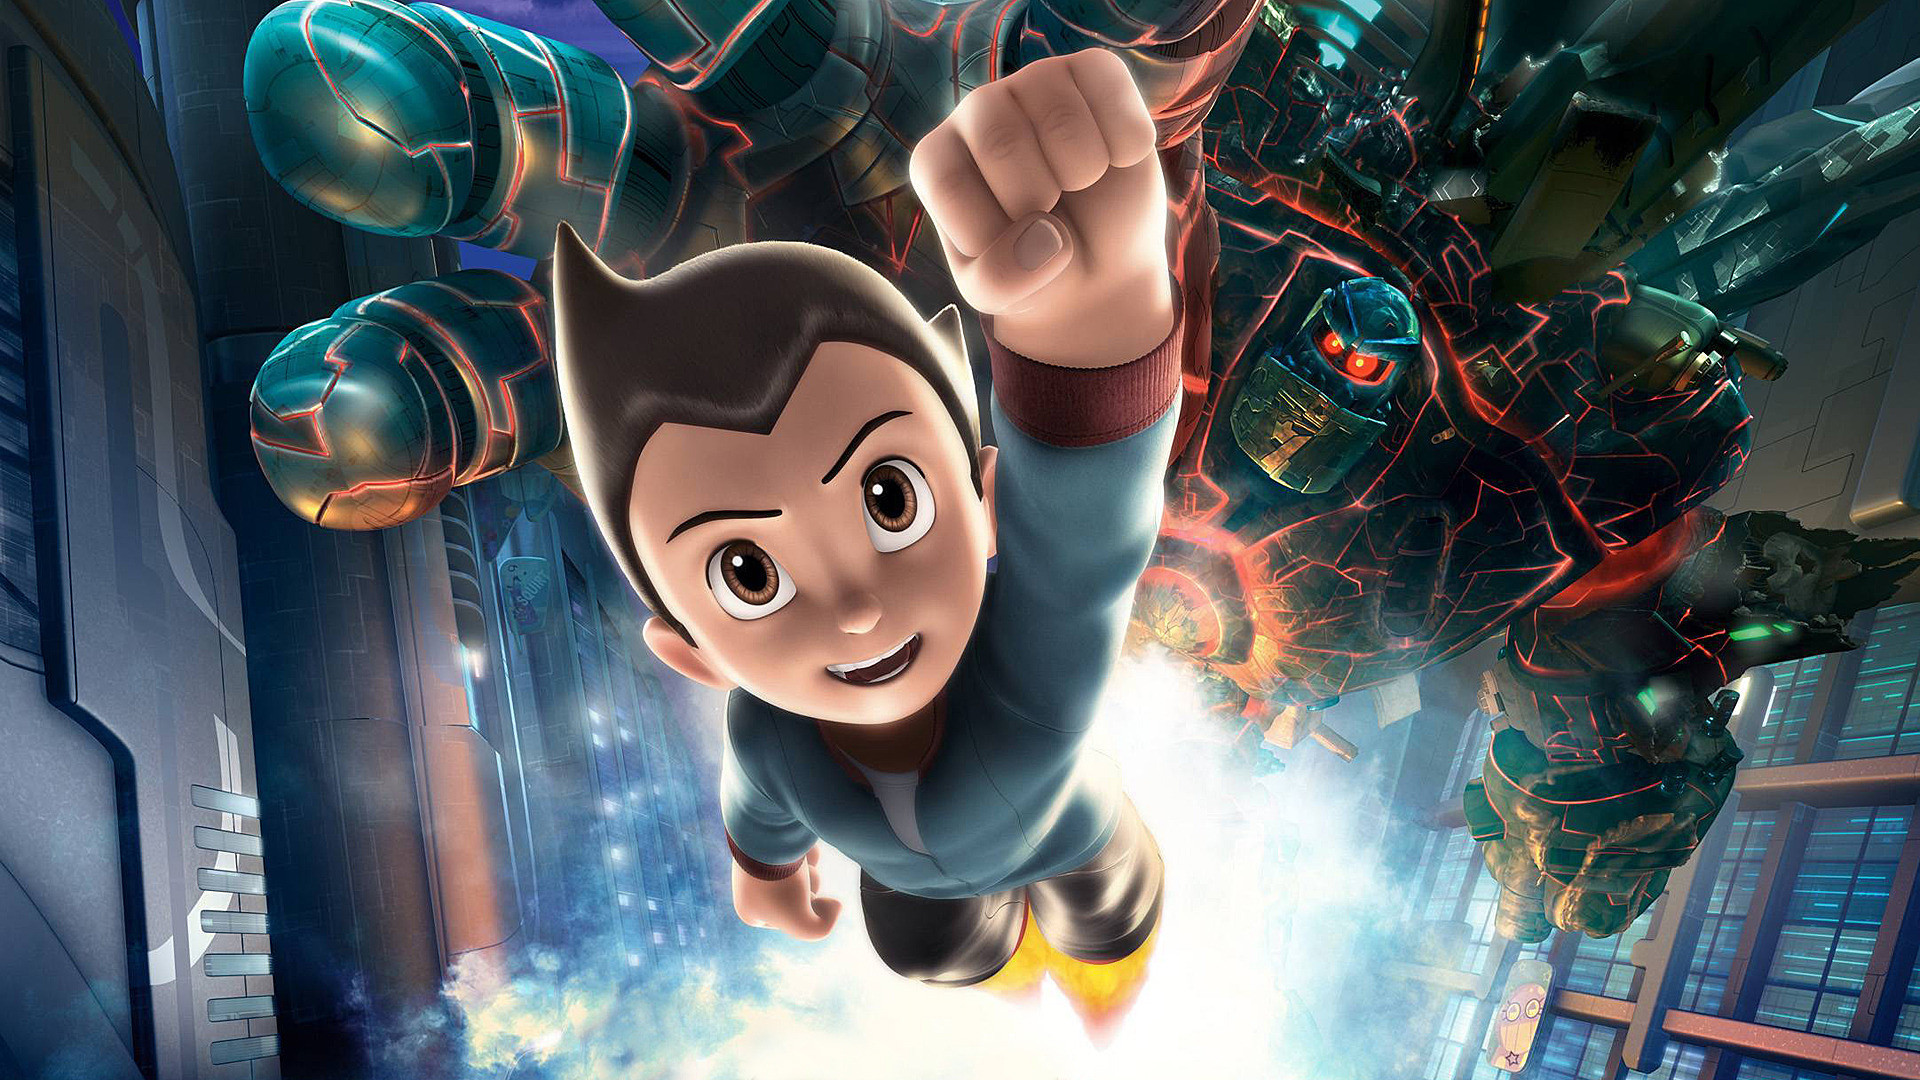 1920x1080 Astro Boy in 1920×1080 Pixel, a Good-Looking and Strong Boy, Brave Enough  to Face Any Danger, Even Willing to Sacrifice Himself – TV & Movies  Wallpaper